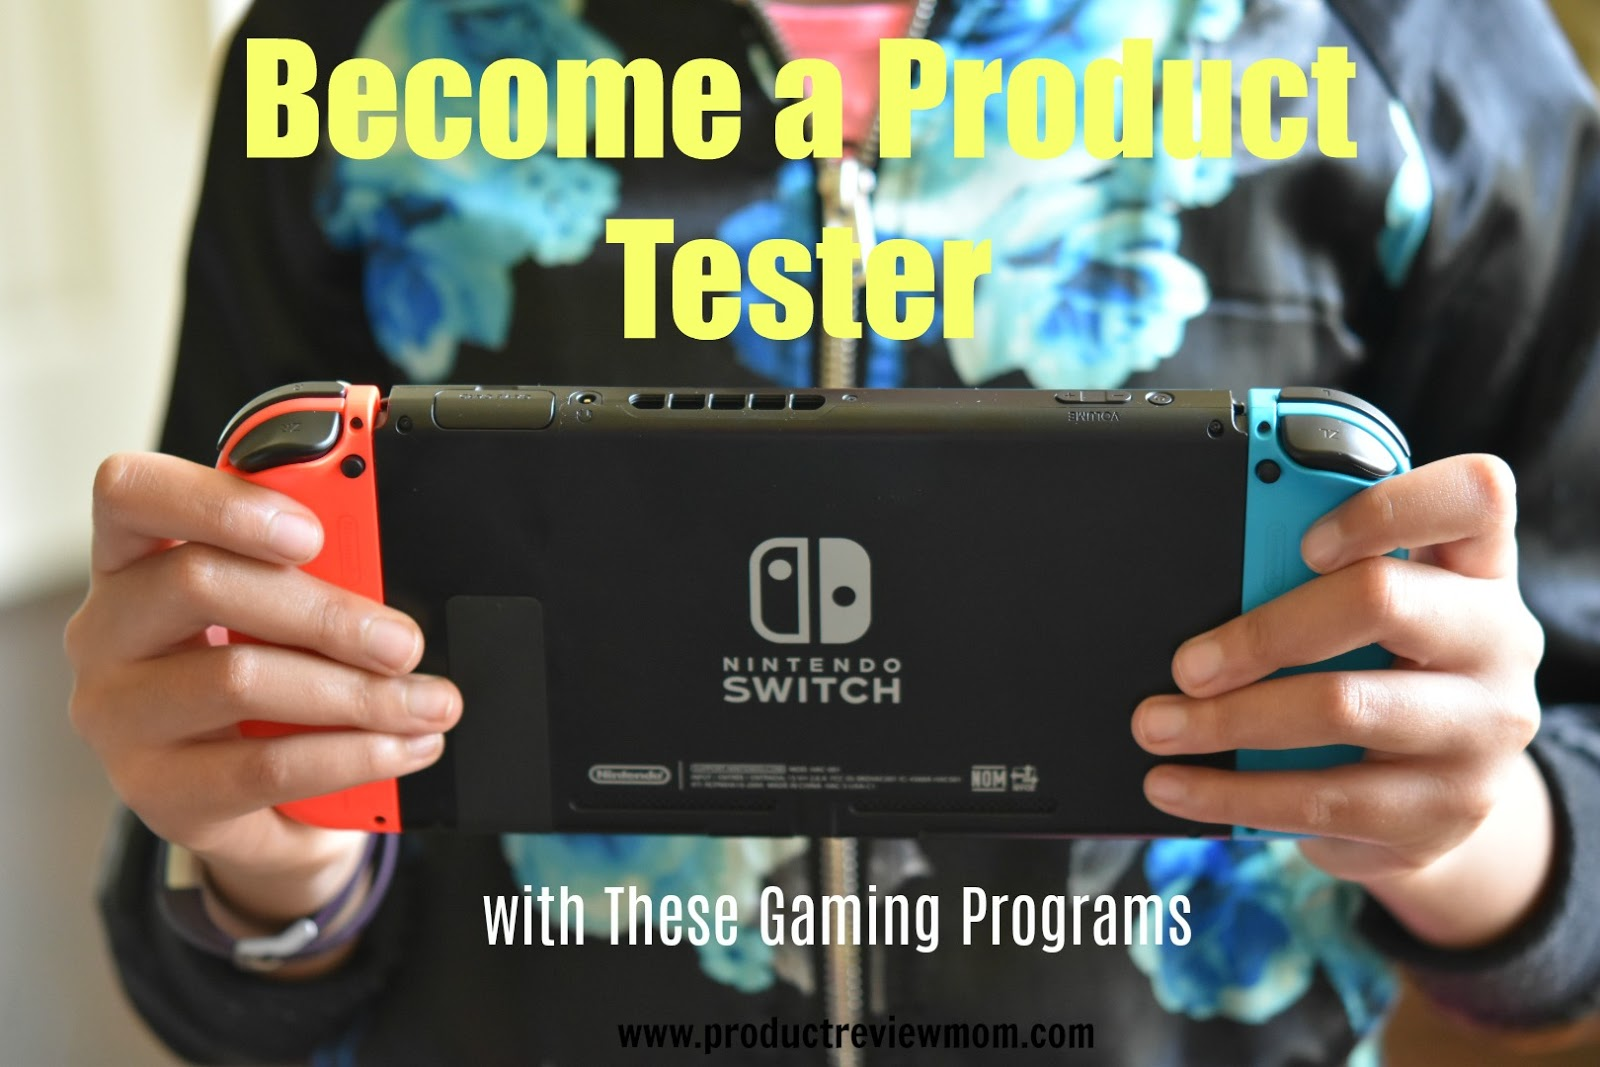 How to Become a Product Tester with These Gaming Programs  via  www.productreviewmom.com